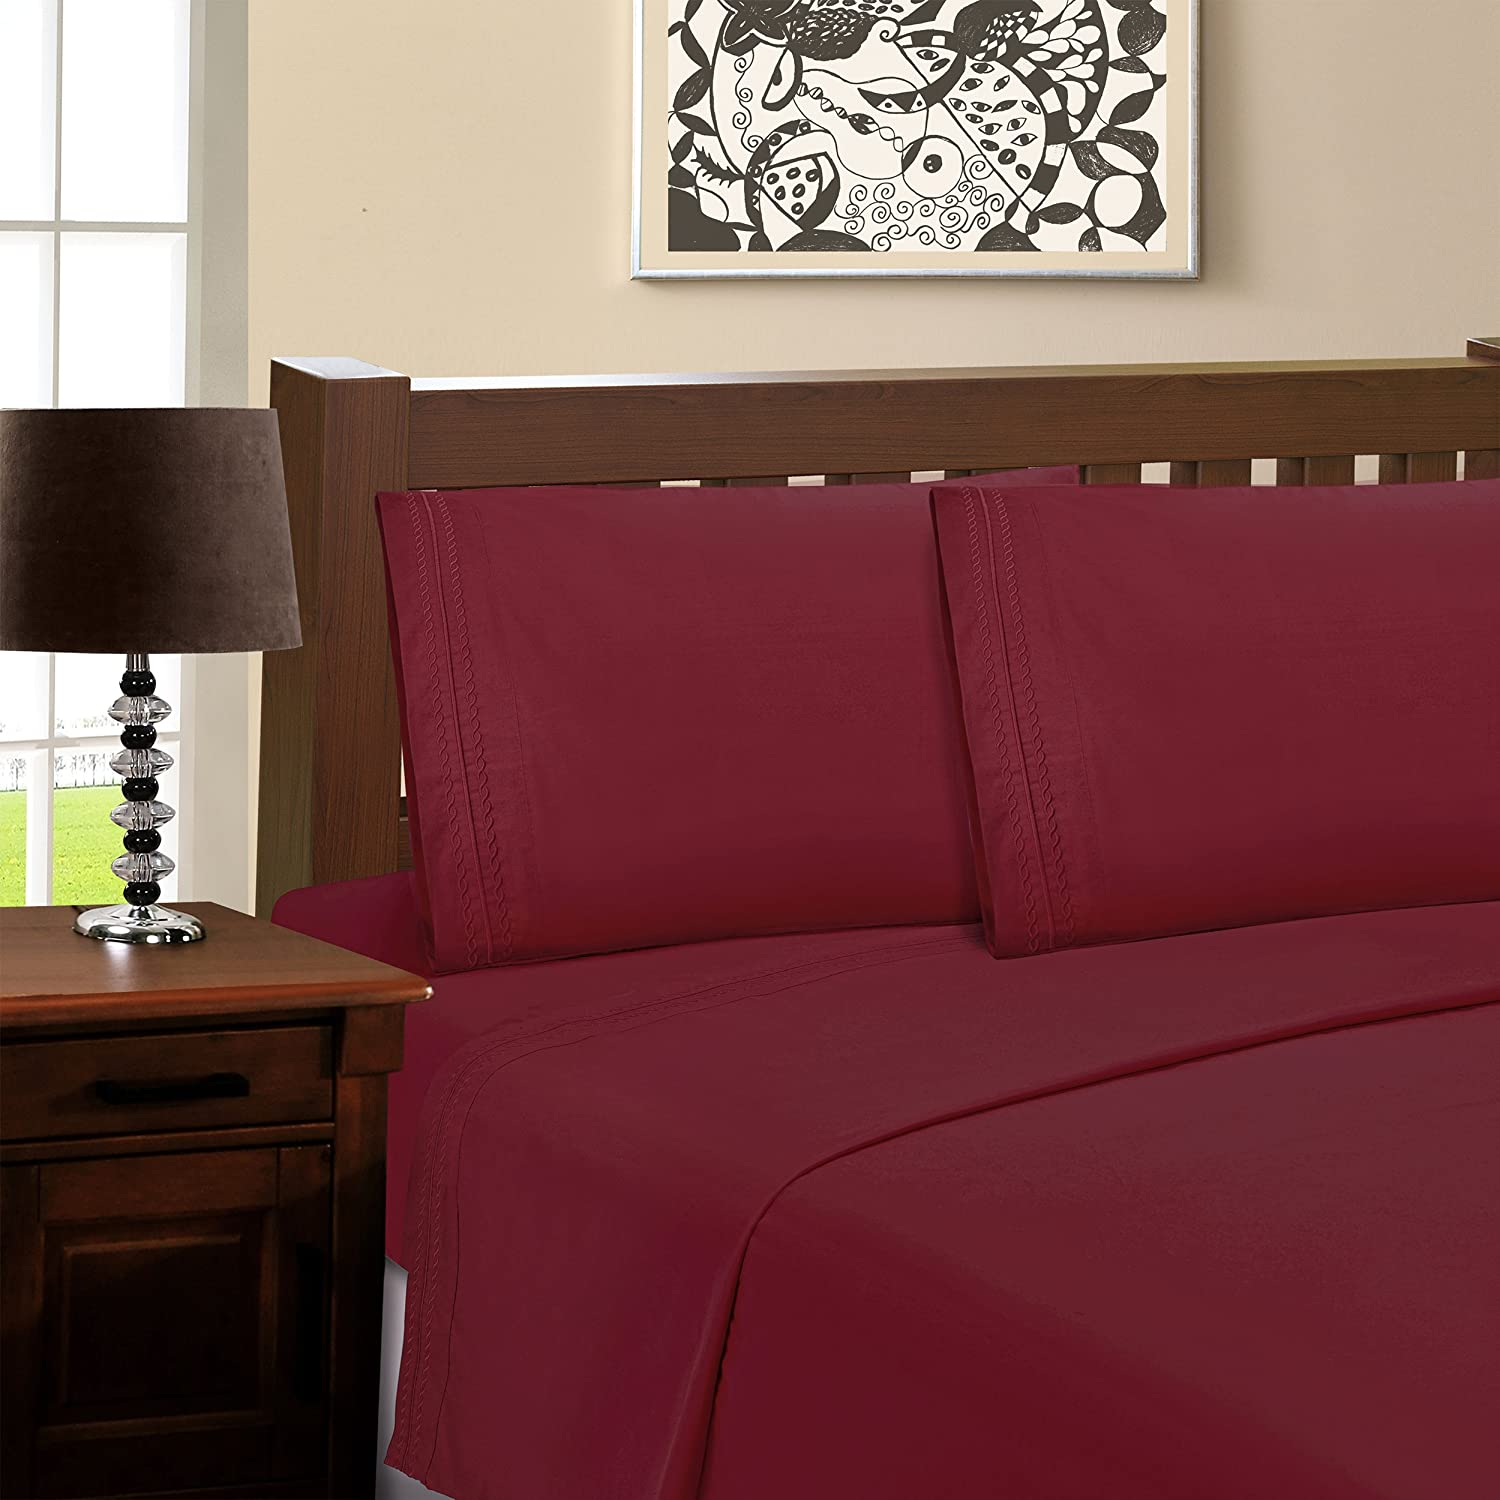 New item SUPERIOR Ultra-Soft All stores are sold Microfiber Sheet Set Cal King Burgundy -